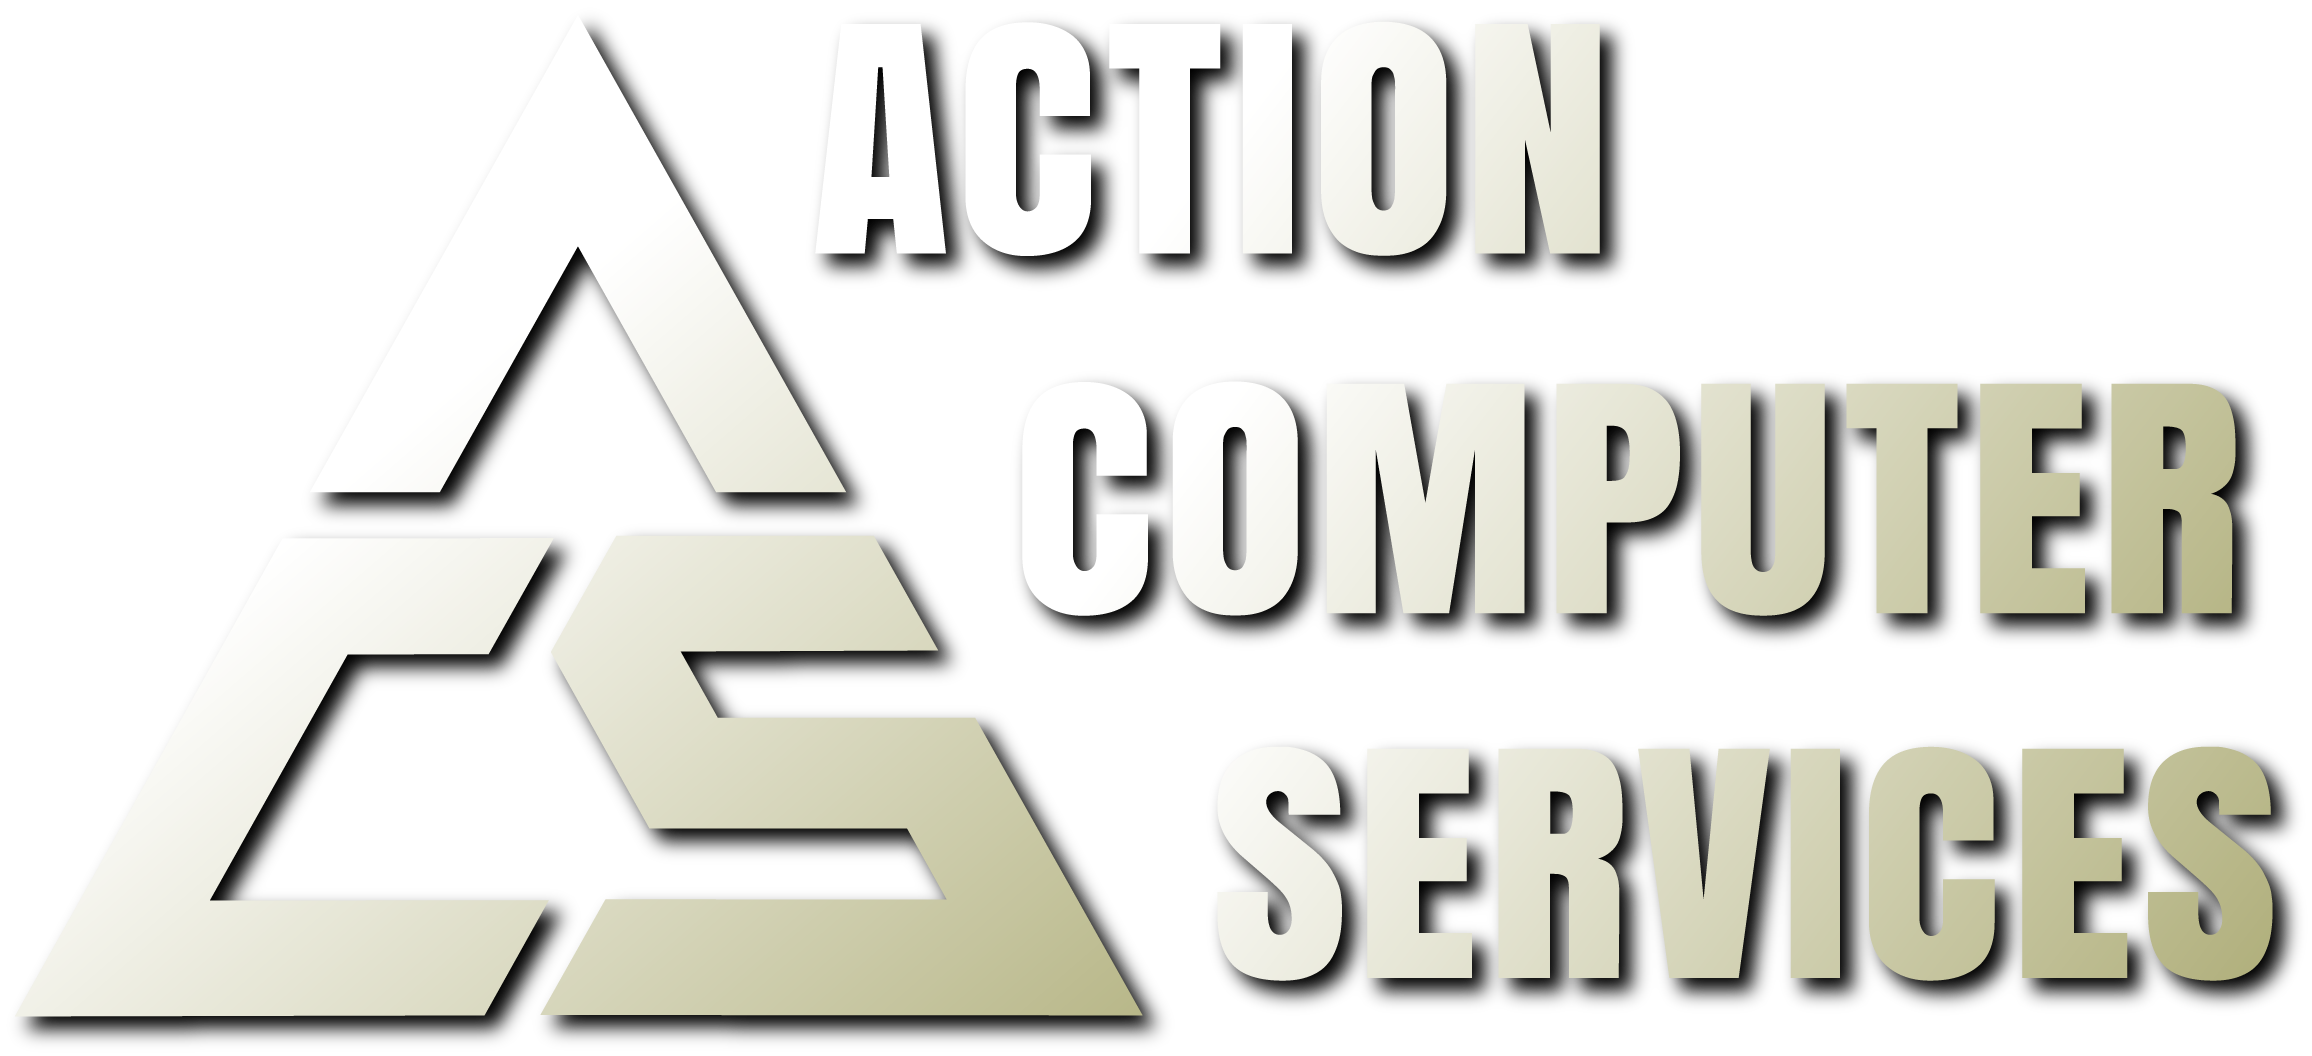 Action Computer Services